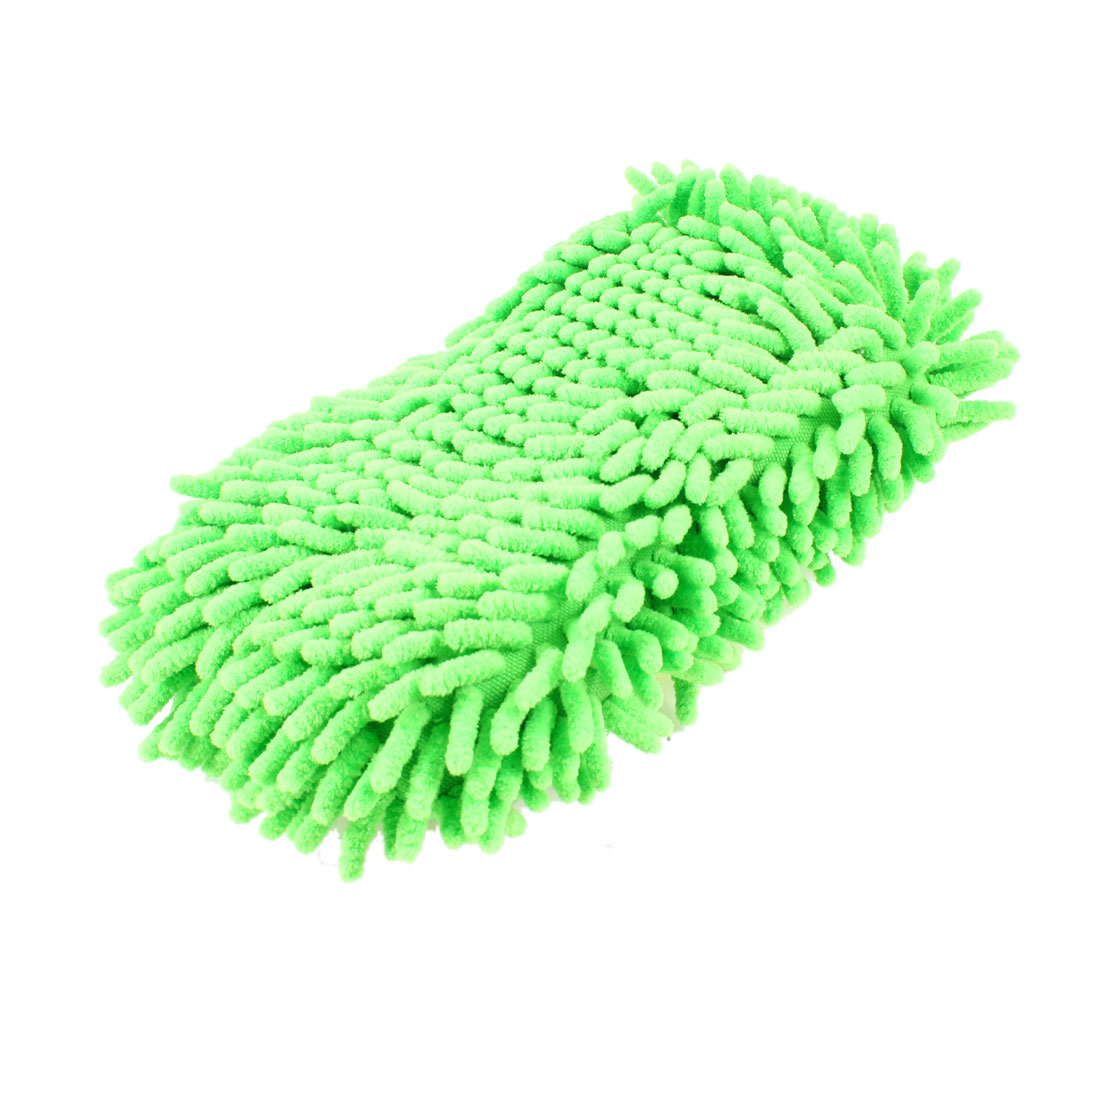 Microfiber Chenille Light Green Car Washing Sponge Pad Cleaning Tool